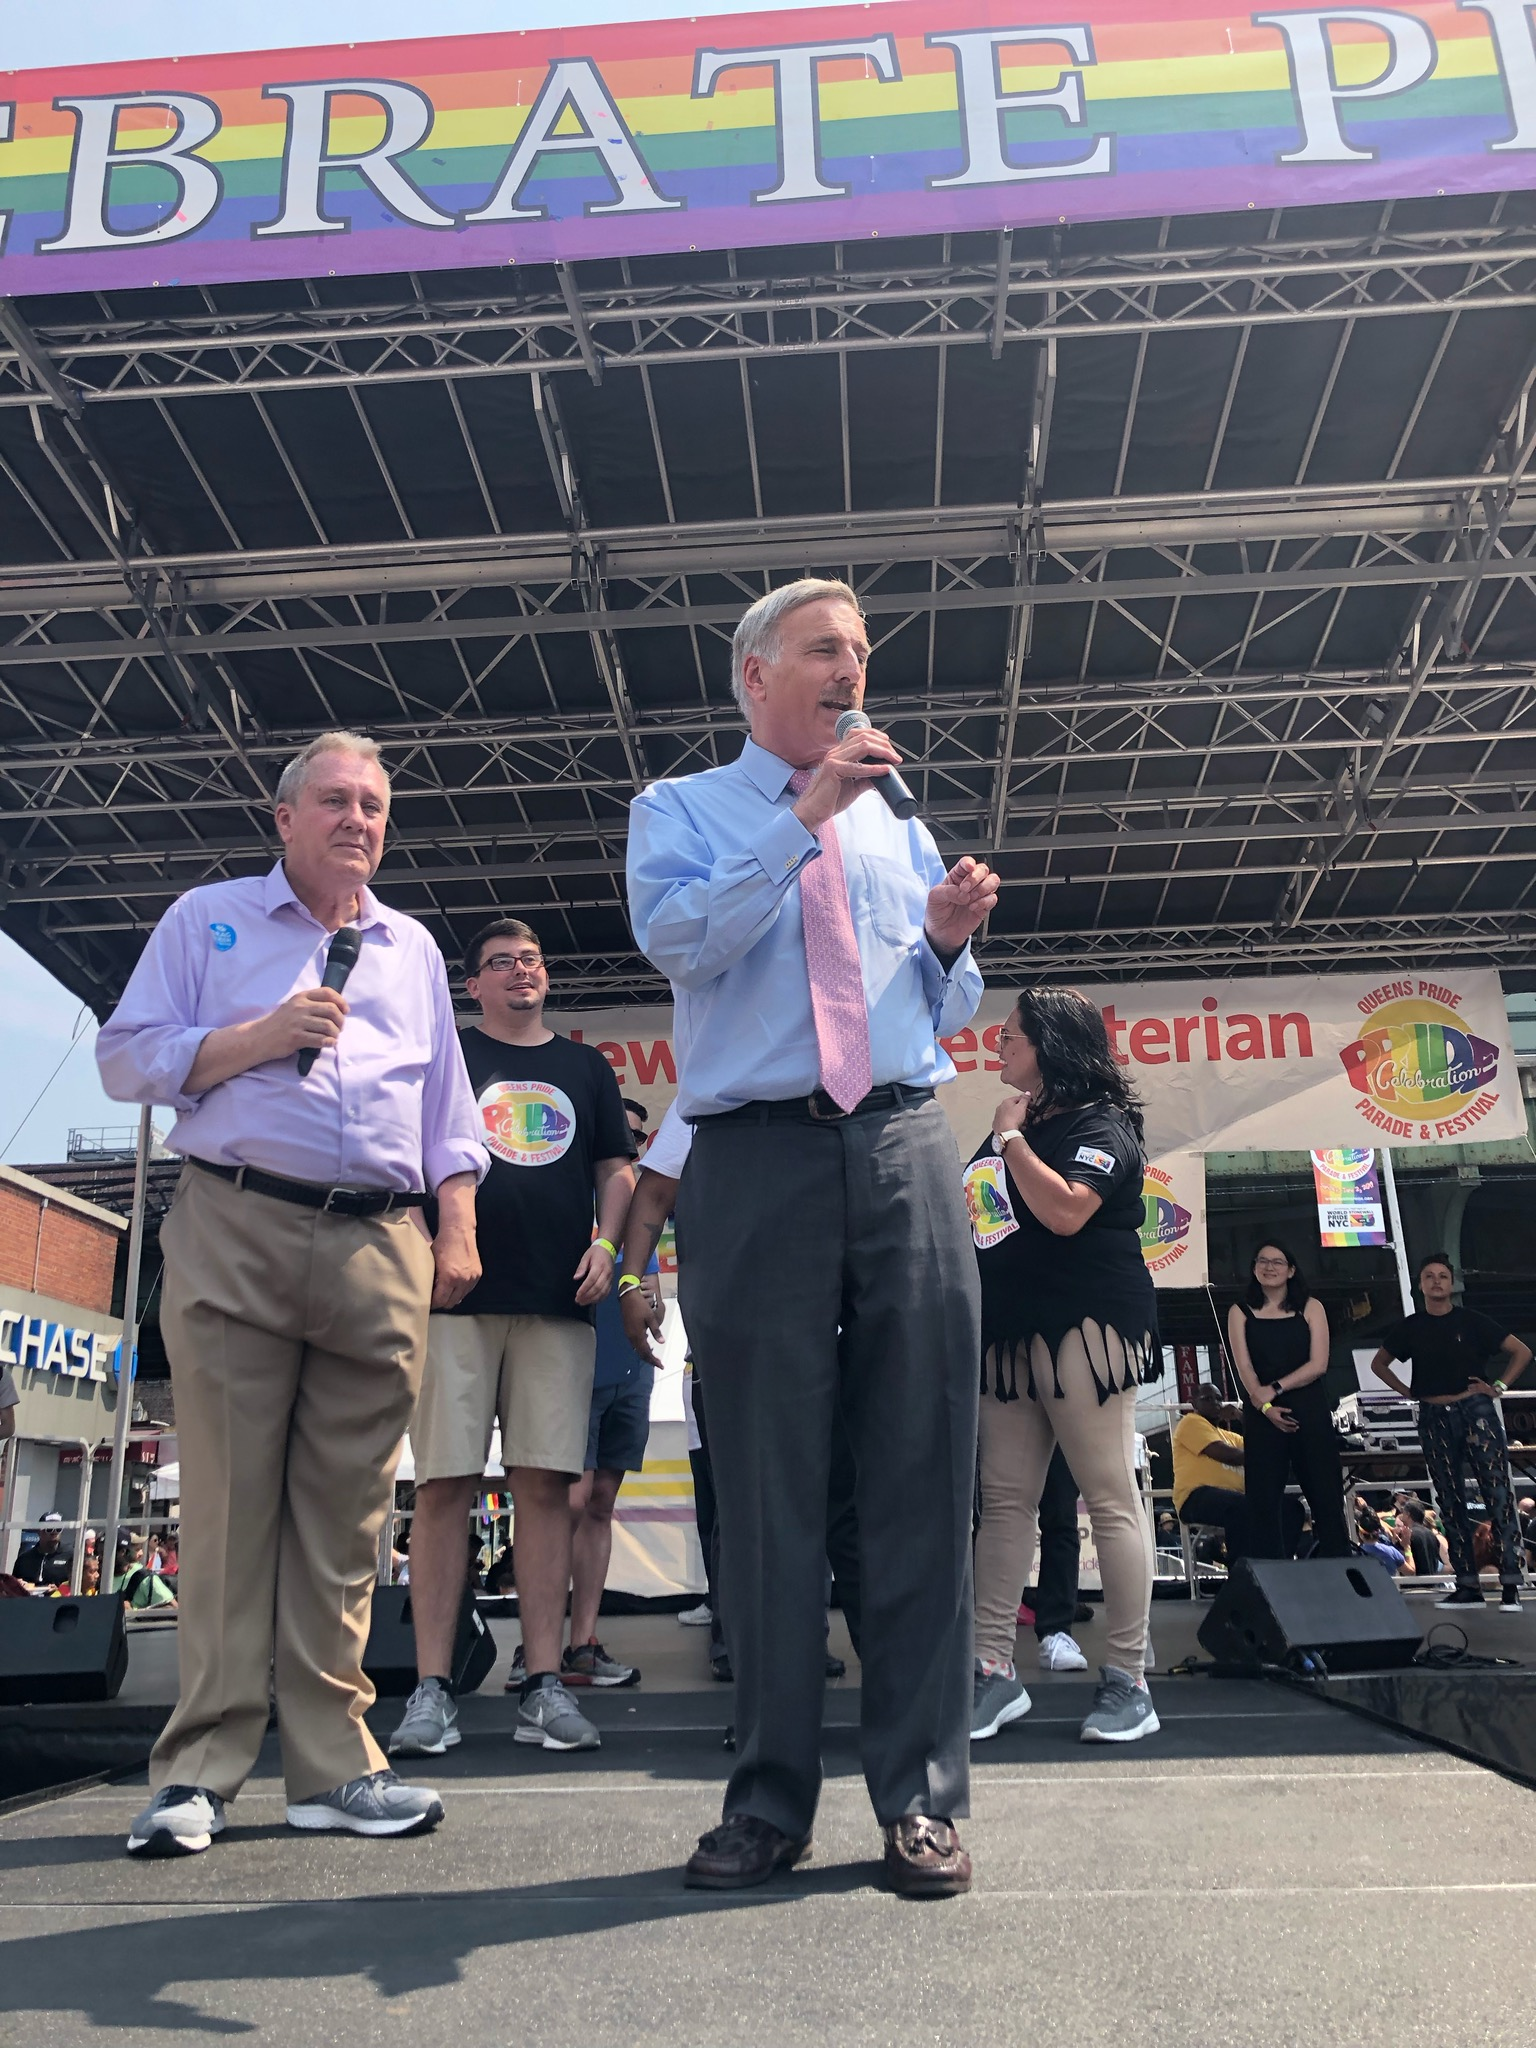 Assemblyman Weprin speaks at Queens Pride Parade with Council Member Daniel Dromm.